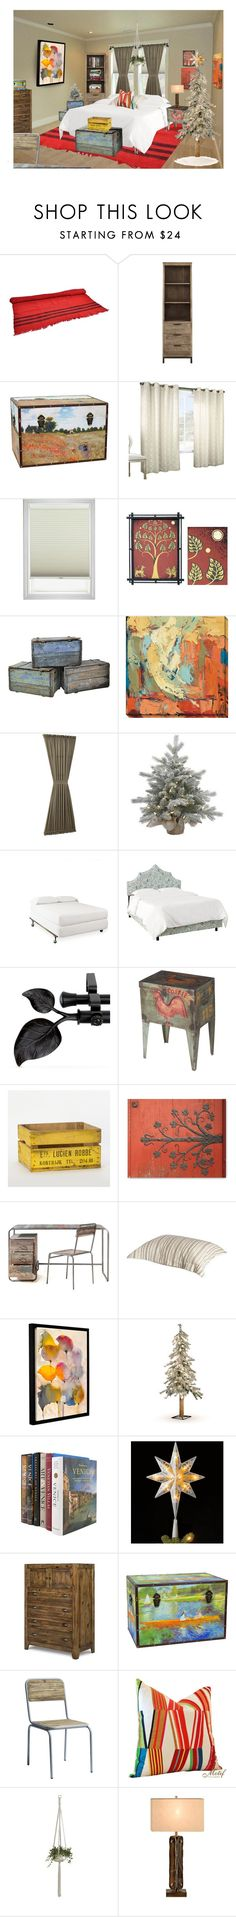 """""""After Joe & Maria Left, Ari Set to Work Arranging Her Room…Jose, at Last the Hero, Moved Things Wherever Ari Requested…She Changed Her Mind Several Times, on Purpose, But Decided it Was Done Shortly After He Hammered His Thumb Hanging Up Her Plant"""" by maggie-johnston ❤ liked on Polyvore featuring interior, interiors, interior design, home, home decor, interior decorating, NOVICA, Home Decorators Collection, Sun Zero and Pottery Barn"""